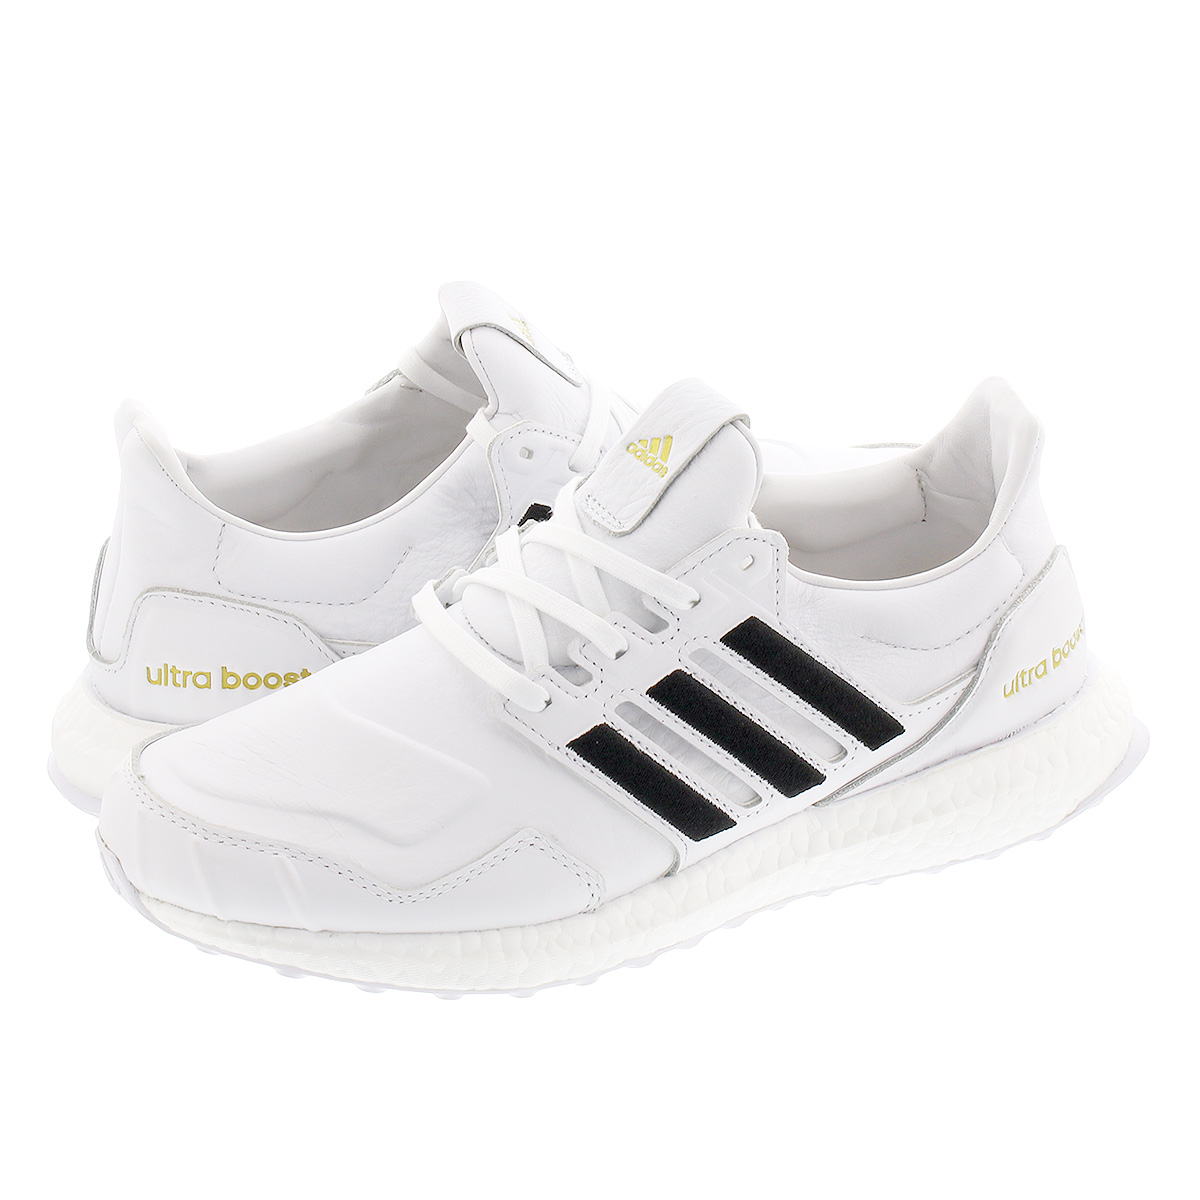 adidas ULTRABOOST DNA LEATHER アディダス ウルトラブースト DNA レザー FTWR WHITE/CORE BLACK/GOLD METALLIC eh1210